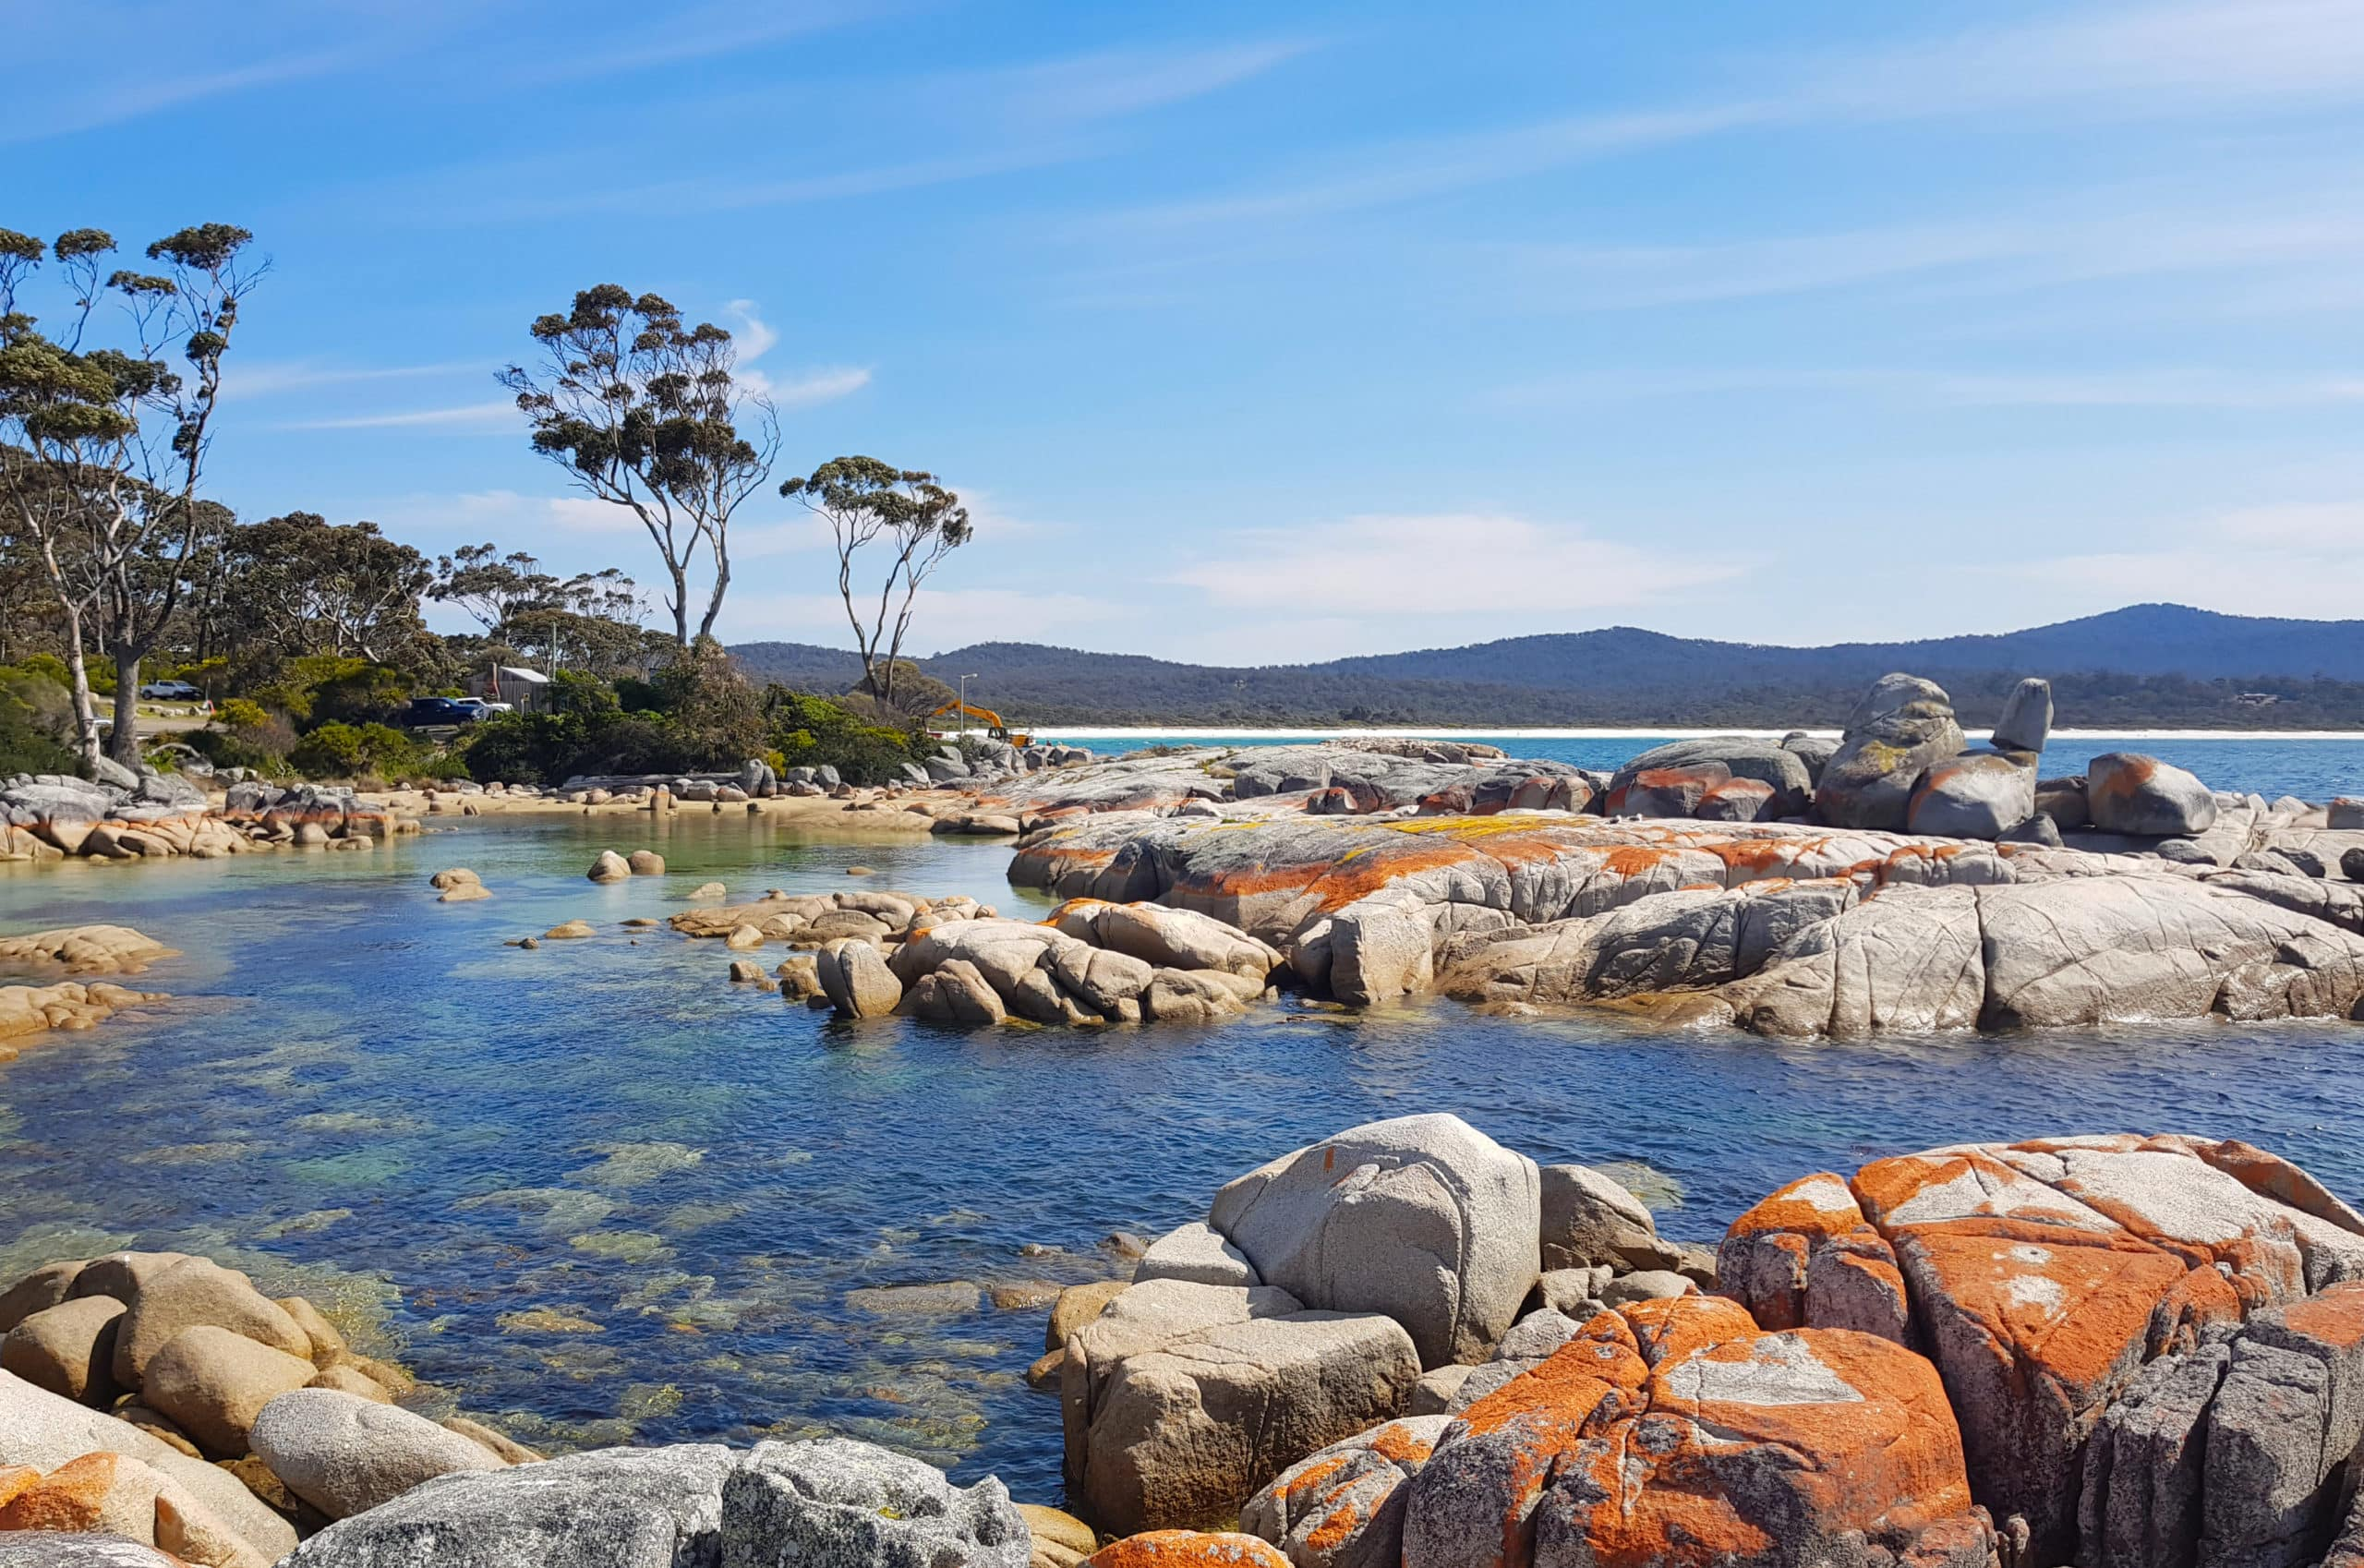 Colourful lagoon in the Bay of Fires